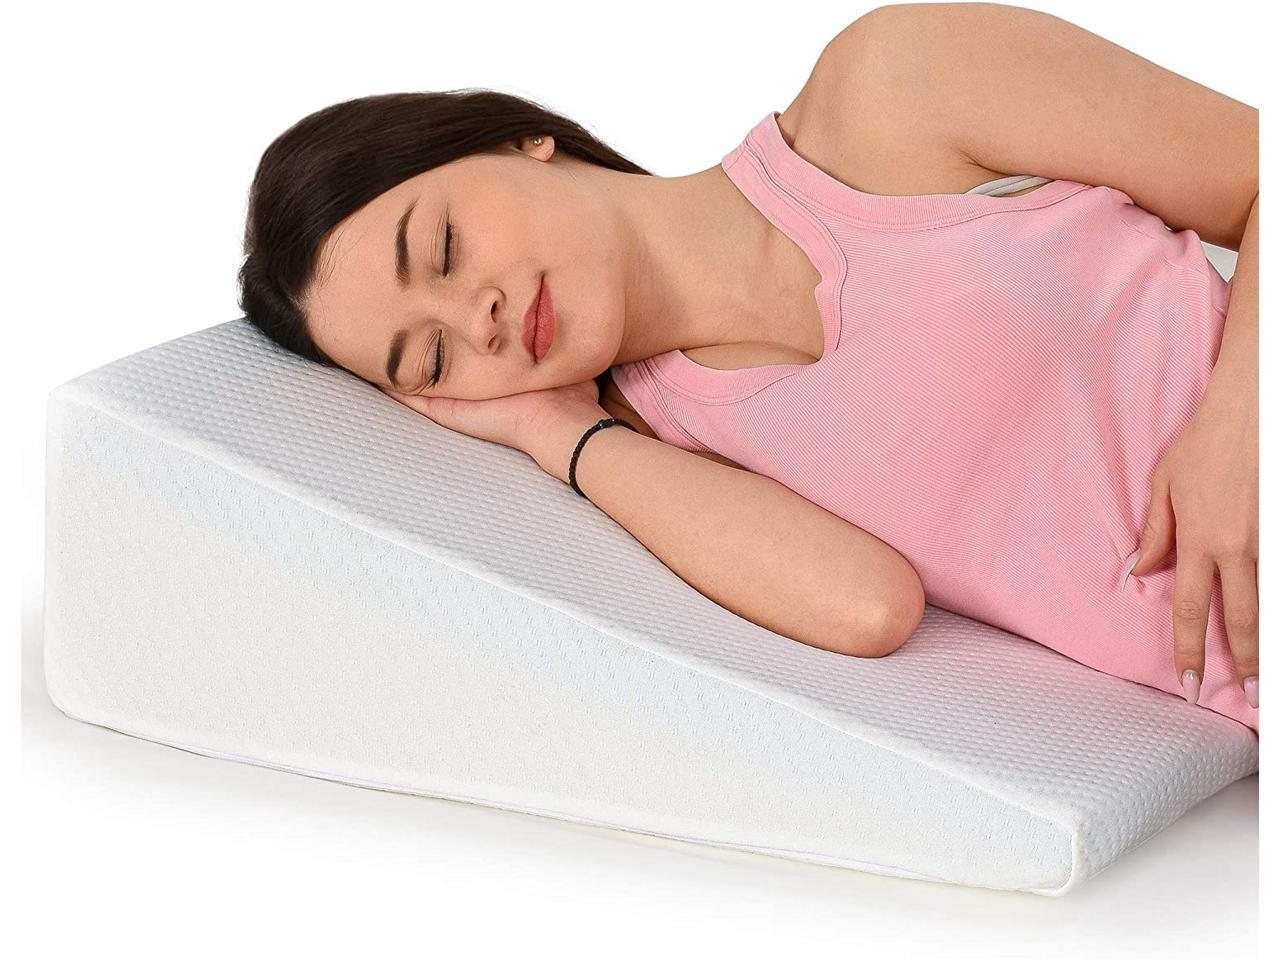 Relax Home Goods 8 Inch Wedge Pillow